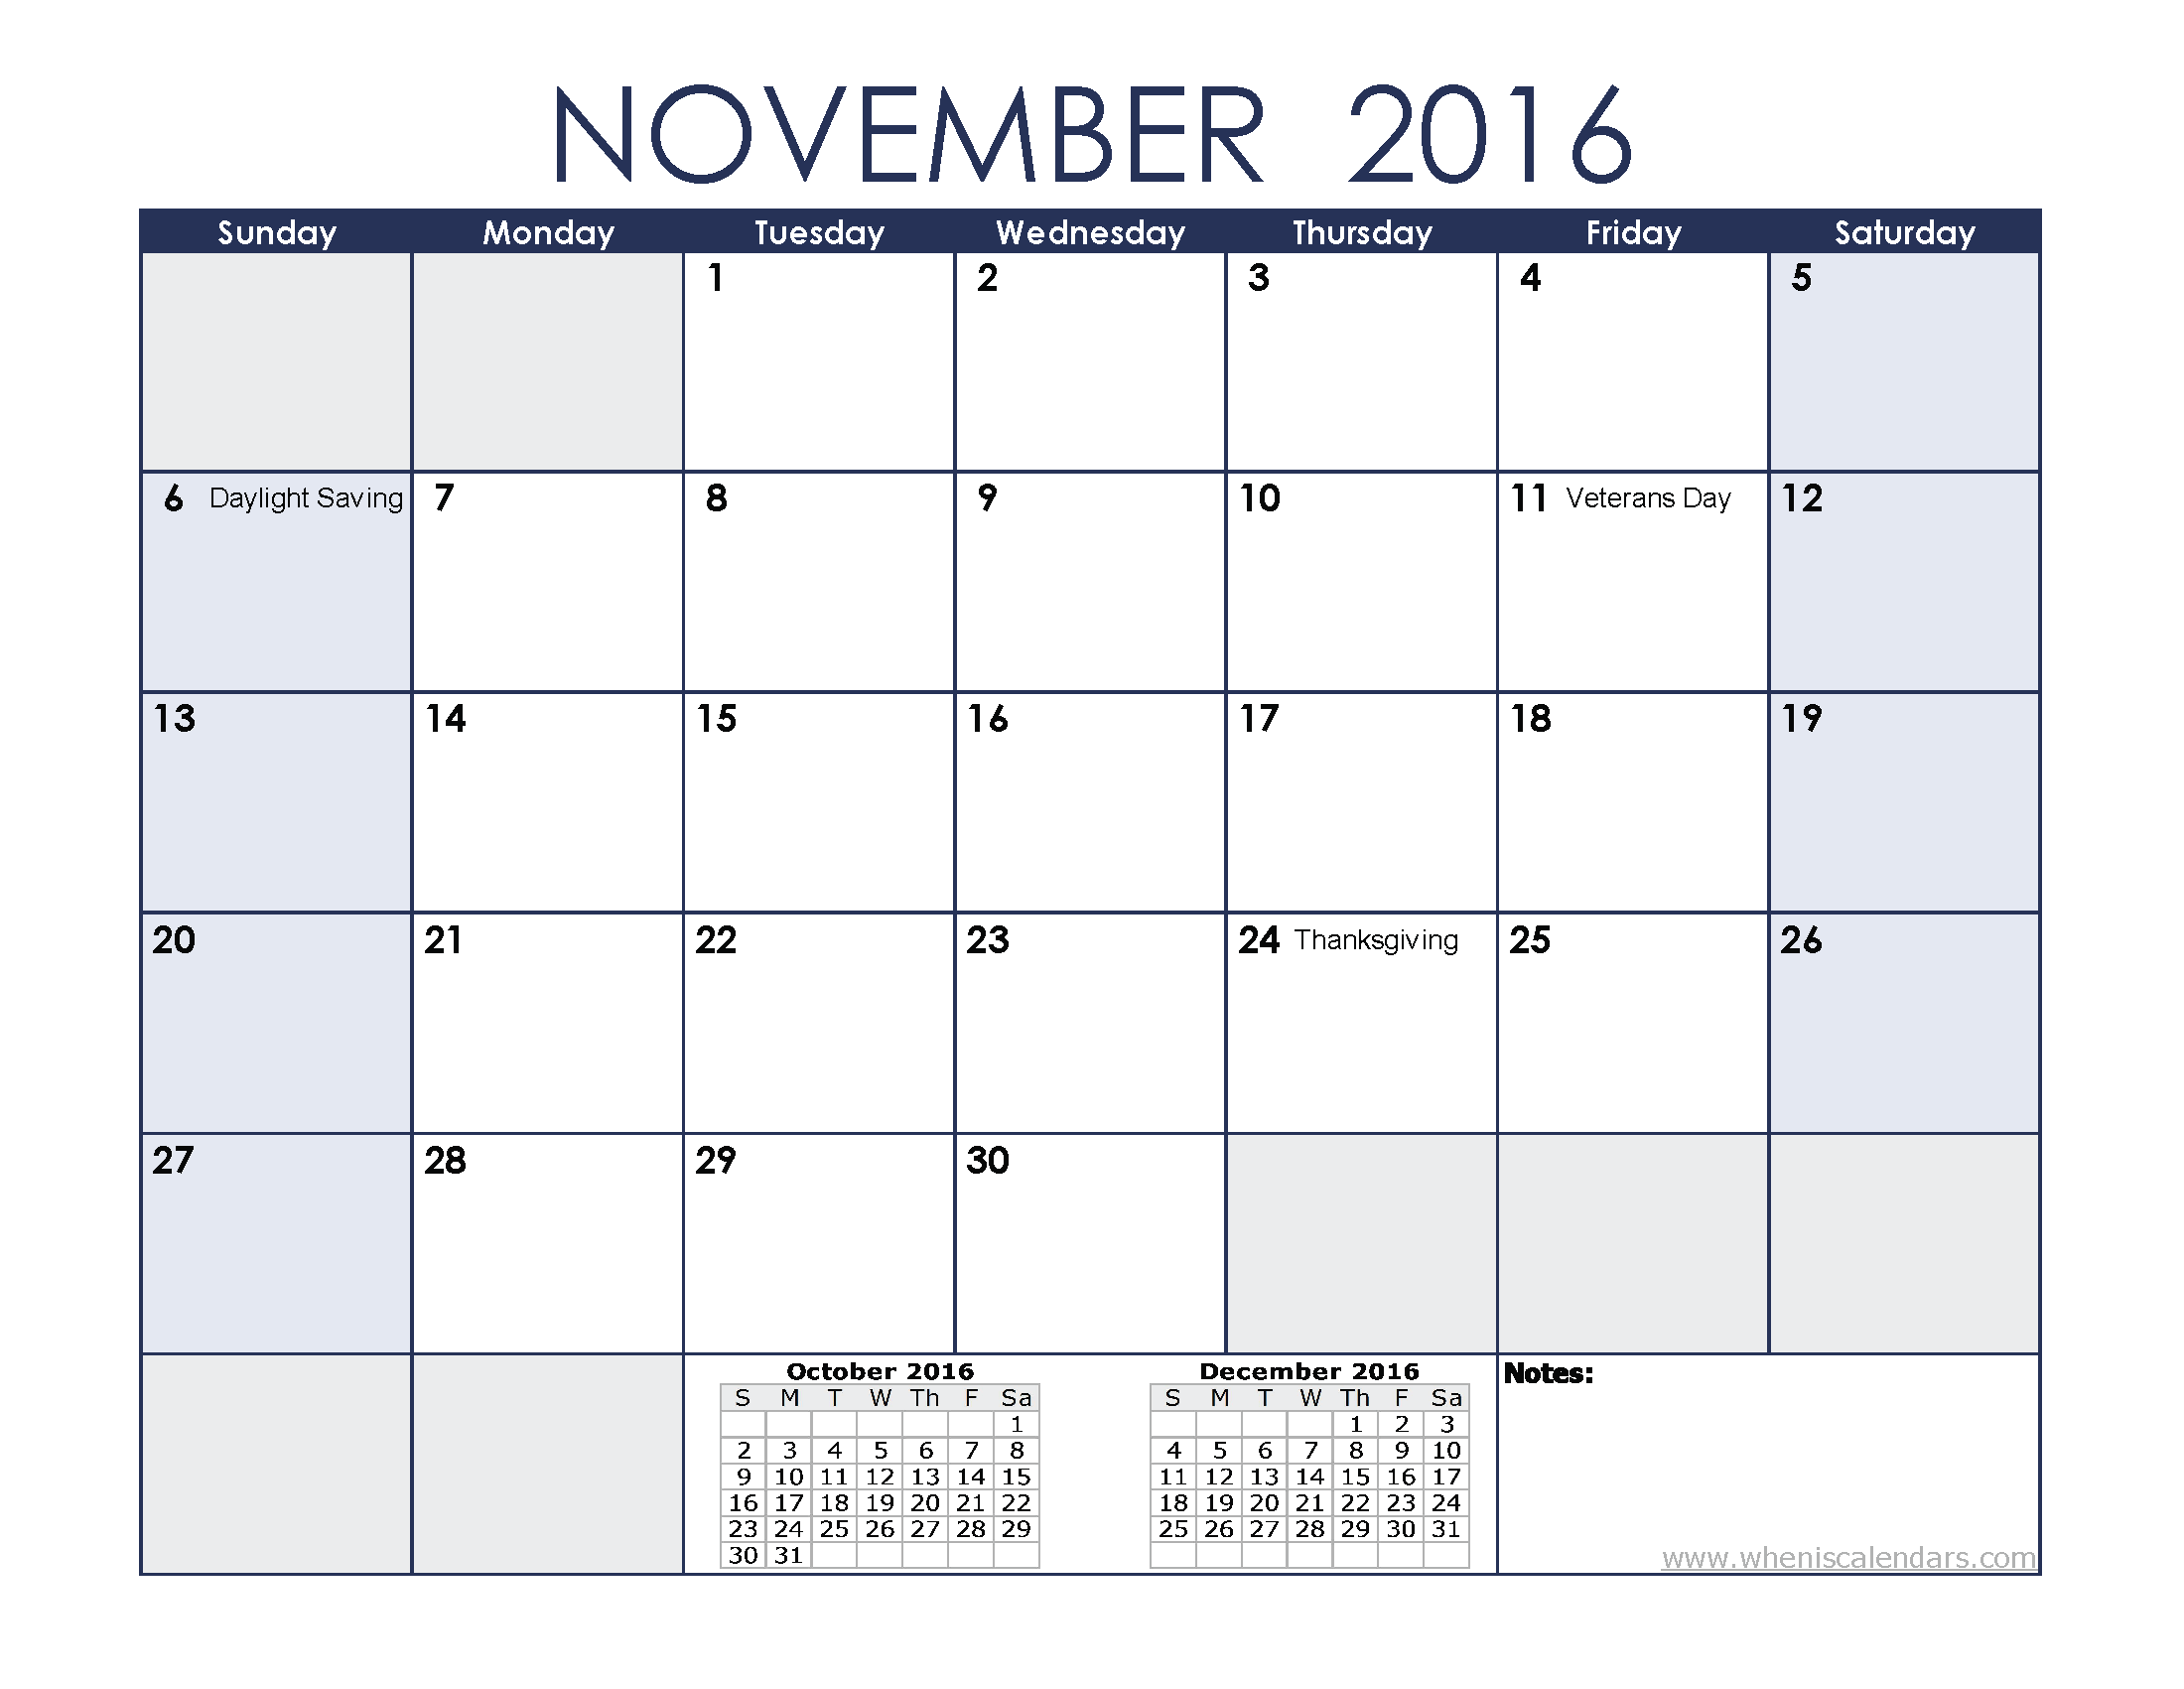 November 2016 Calendar Printable With Holidays | 2017 calendar